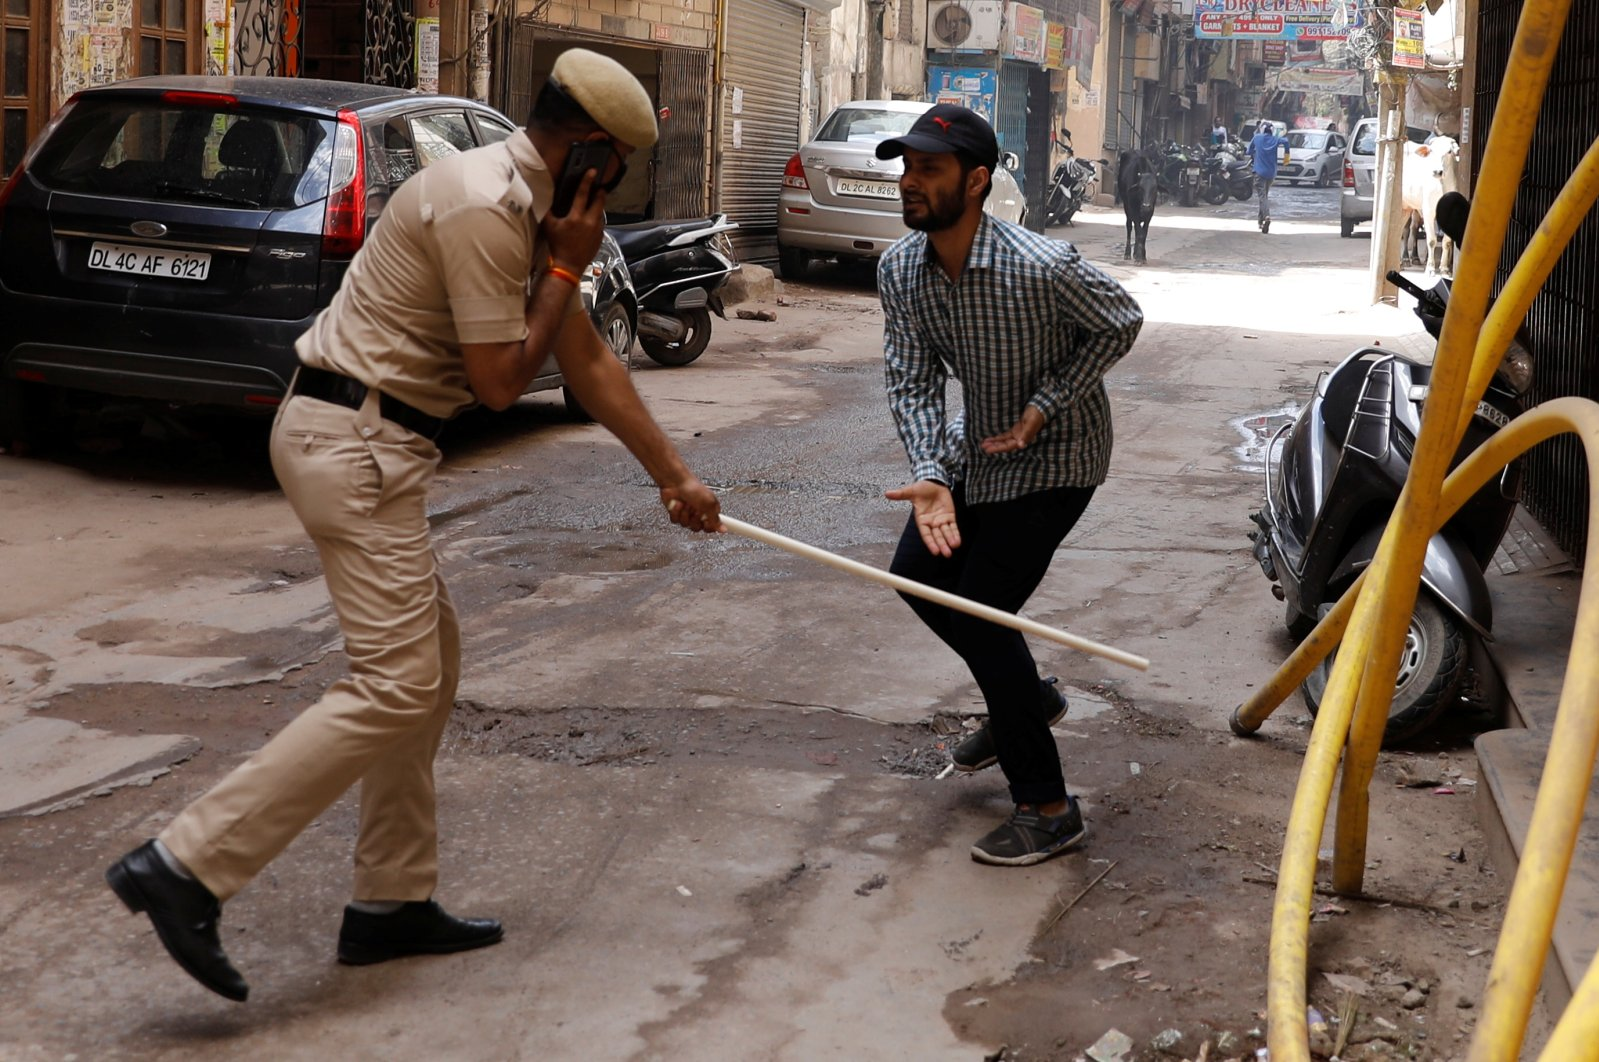 A police officer wields his baton against a man as a punishment for breaking the lockdown rules, New Delhi, Wednesday, March 25, 2020. (Reuters Photo)